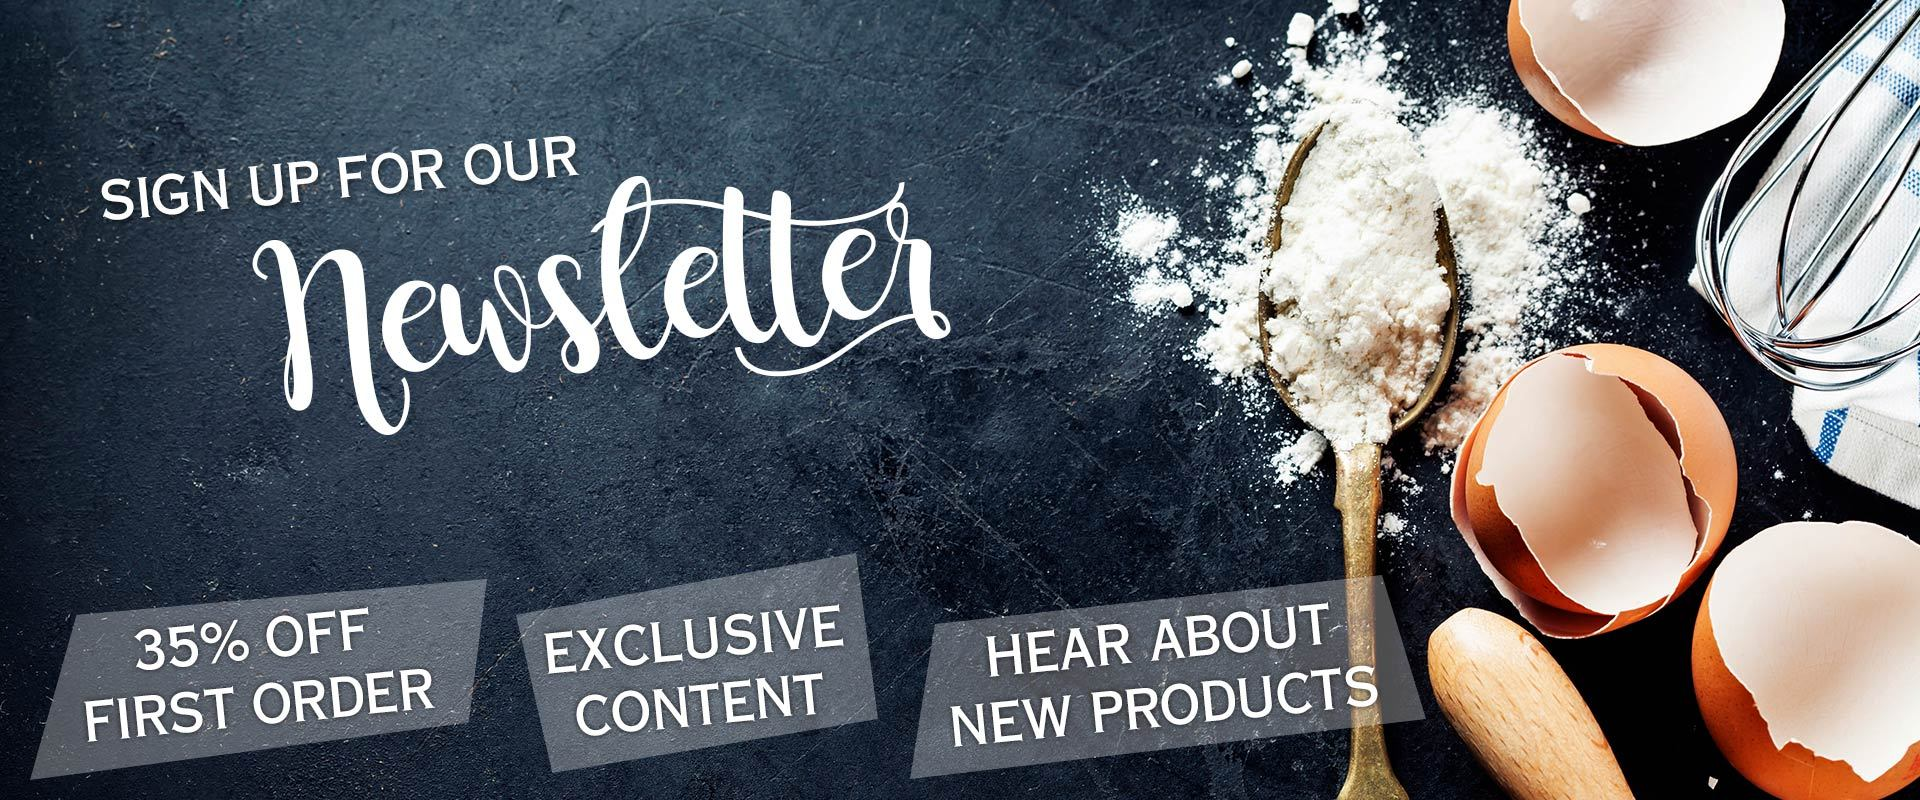 Sign up for our newsletter to hear about our newest products and recipes!